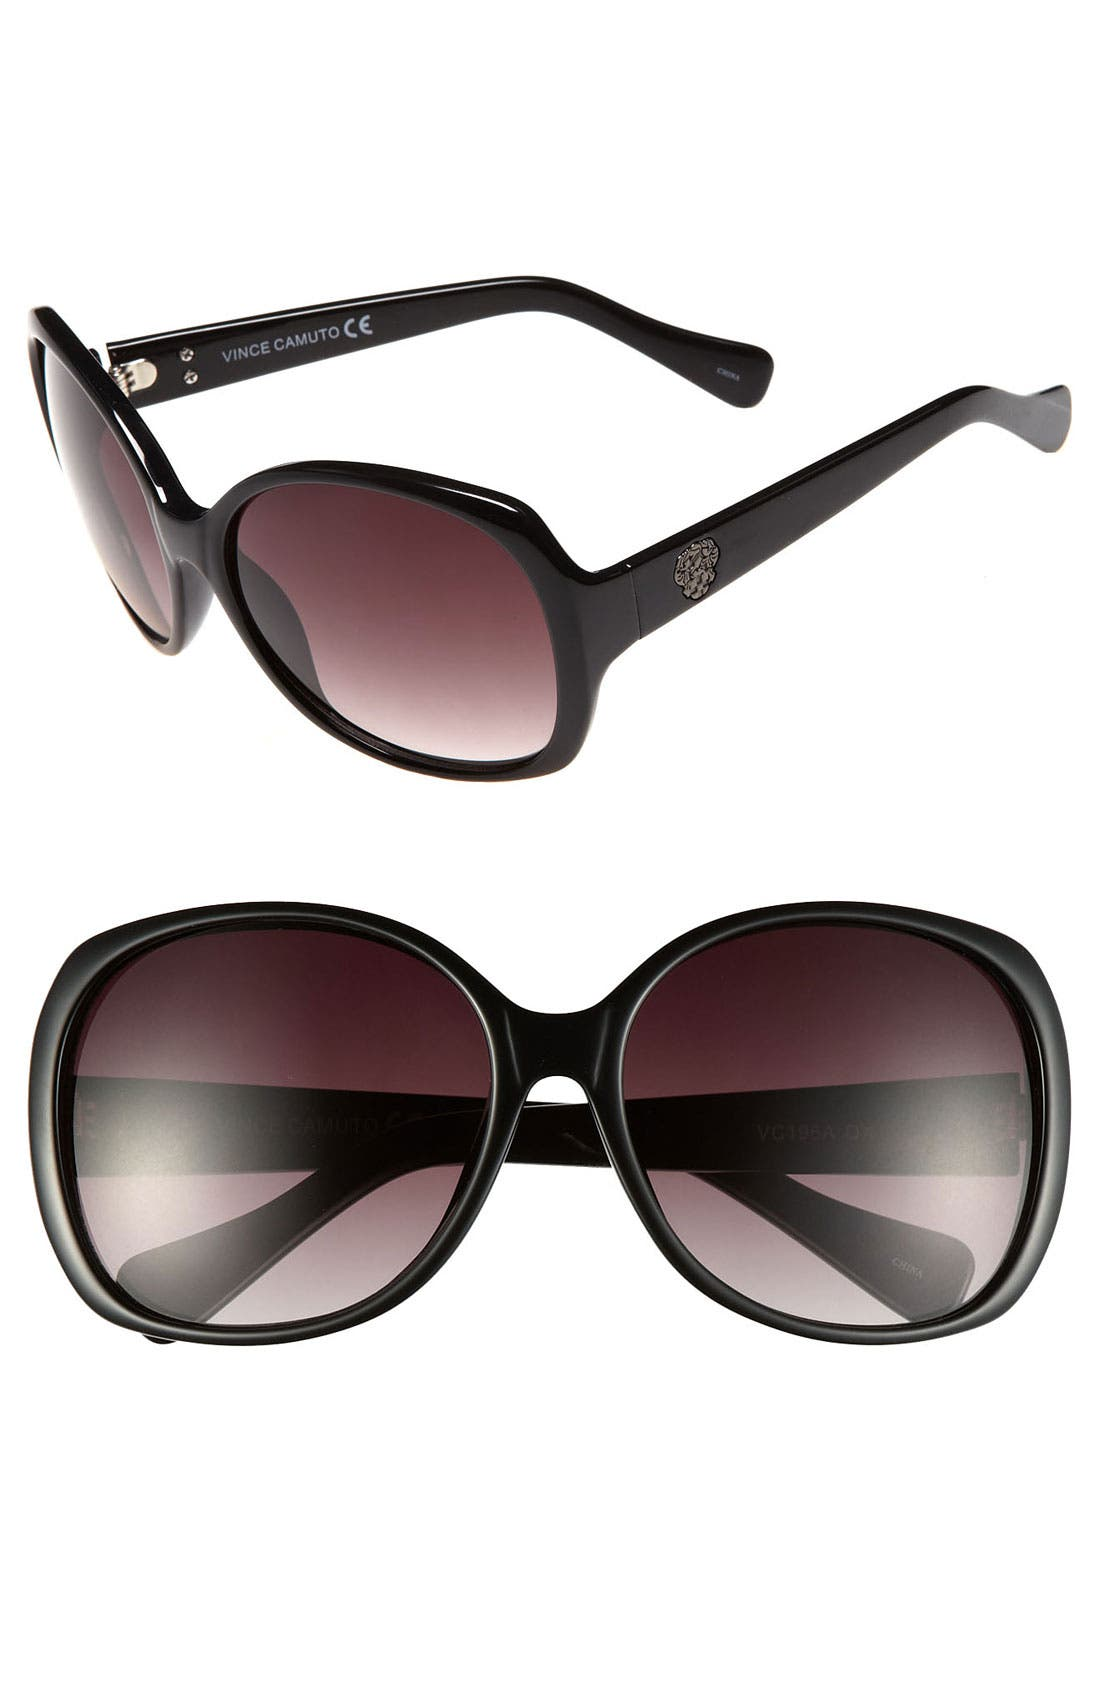 Main Image - Vince Camuto 60mm Oversized Sunglasses (Online Only)